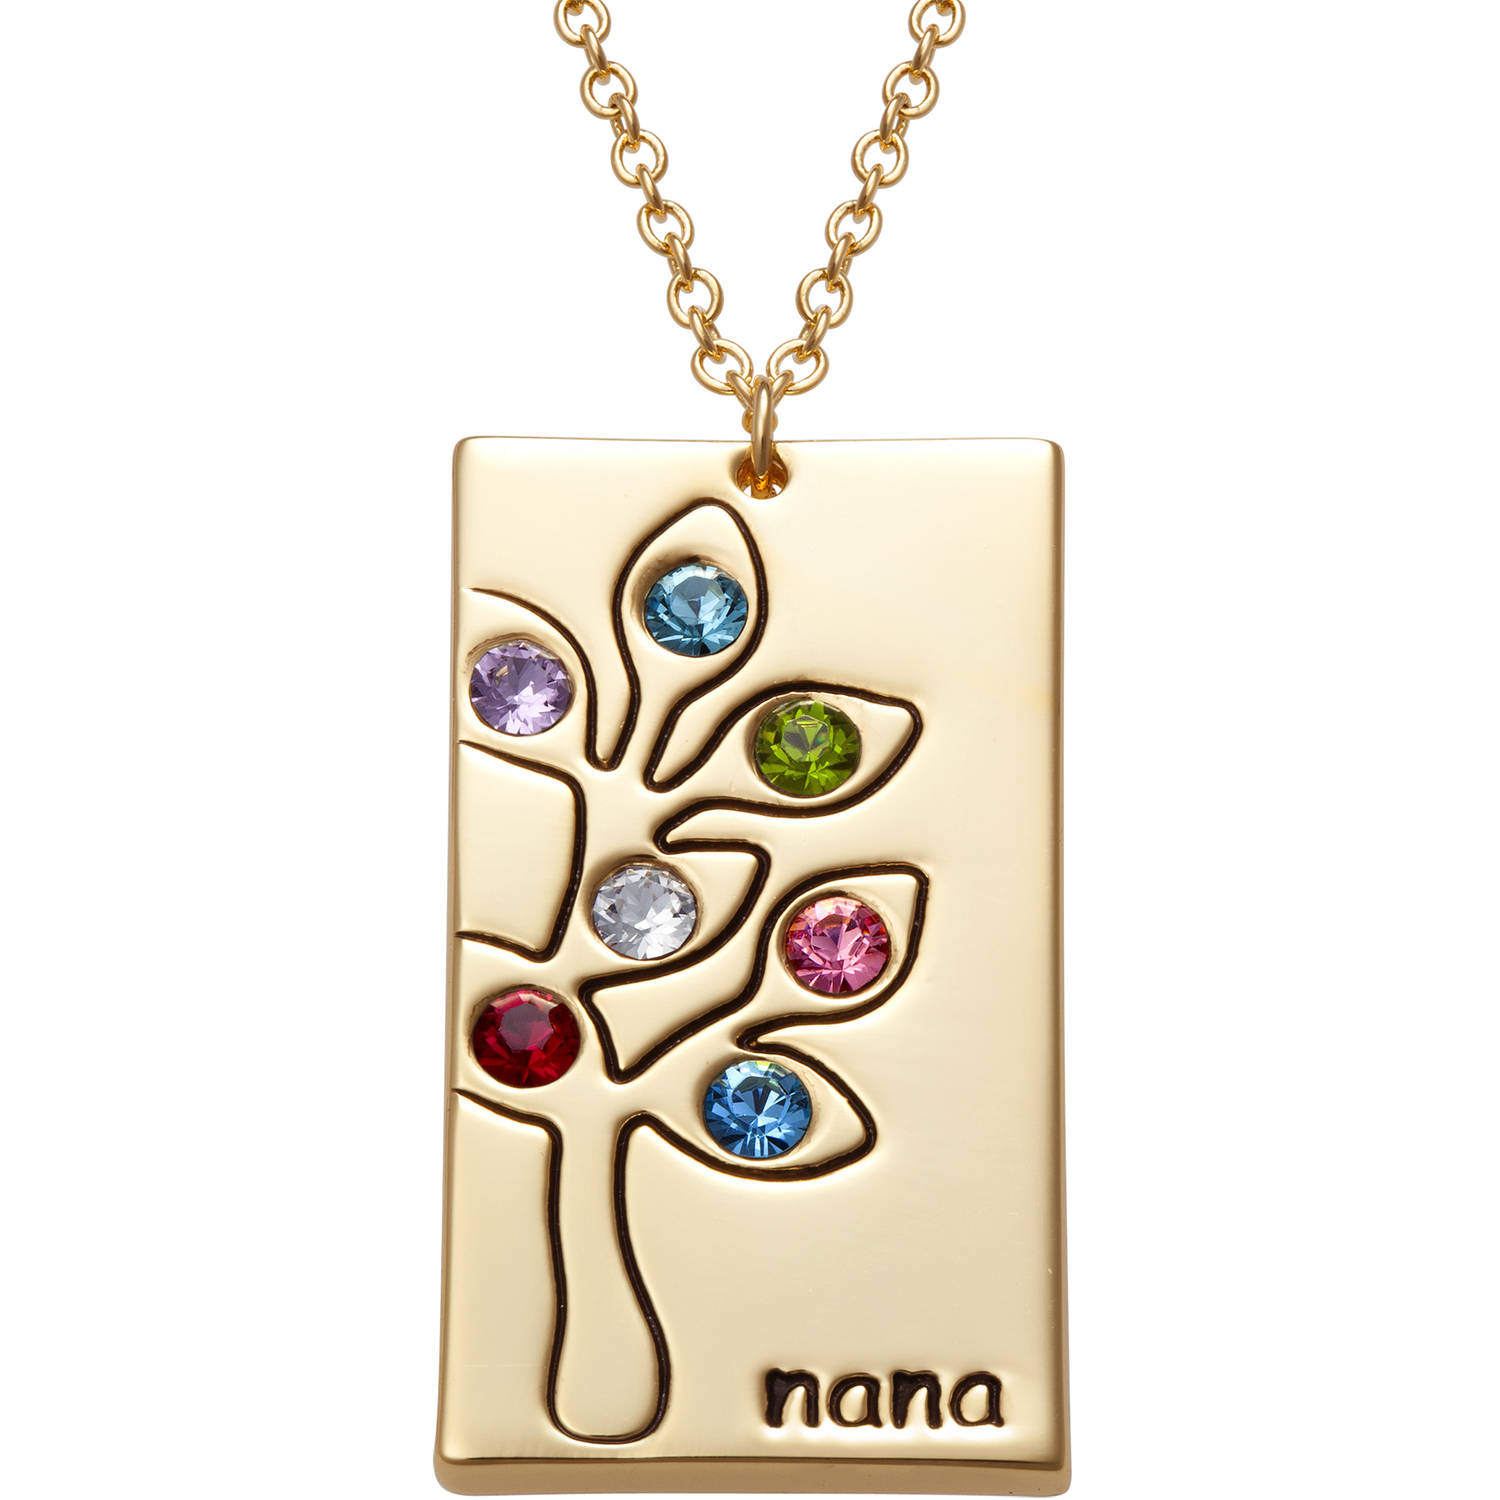 Family Jewelry Personalized Gold-Plated Birthstone Family Tree Nana Necklace